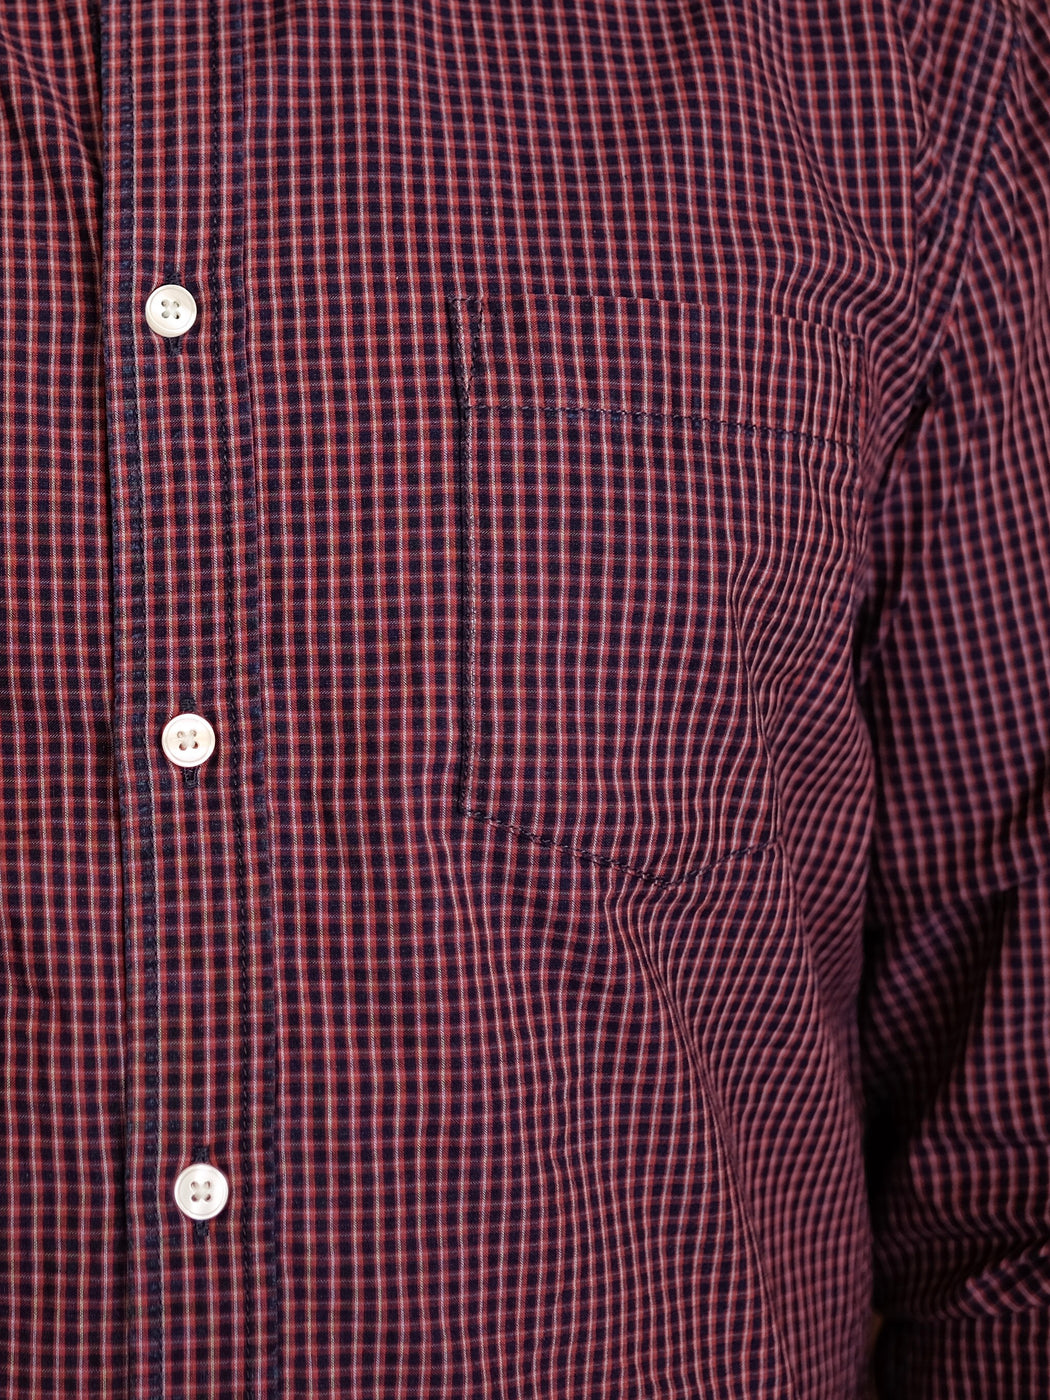 Indigo Red Check Long Sleeve Shirt, Corridor, - Felding Co